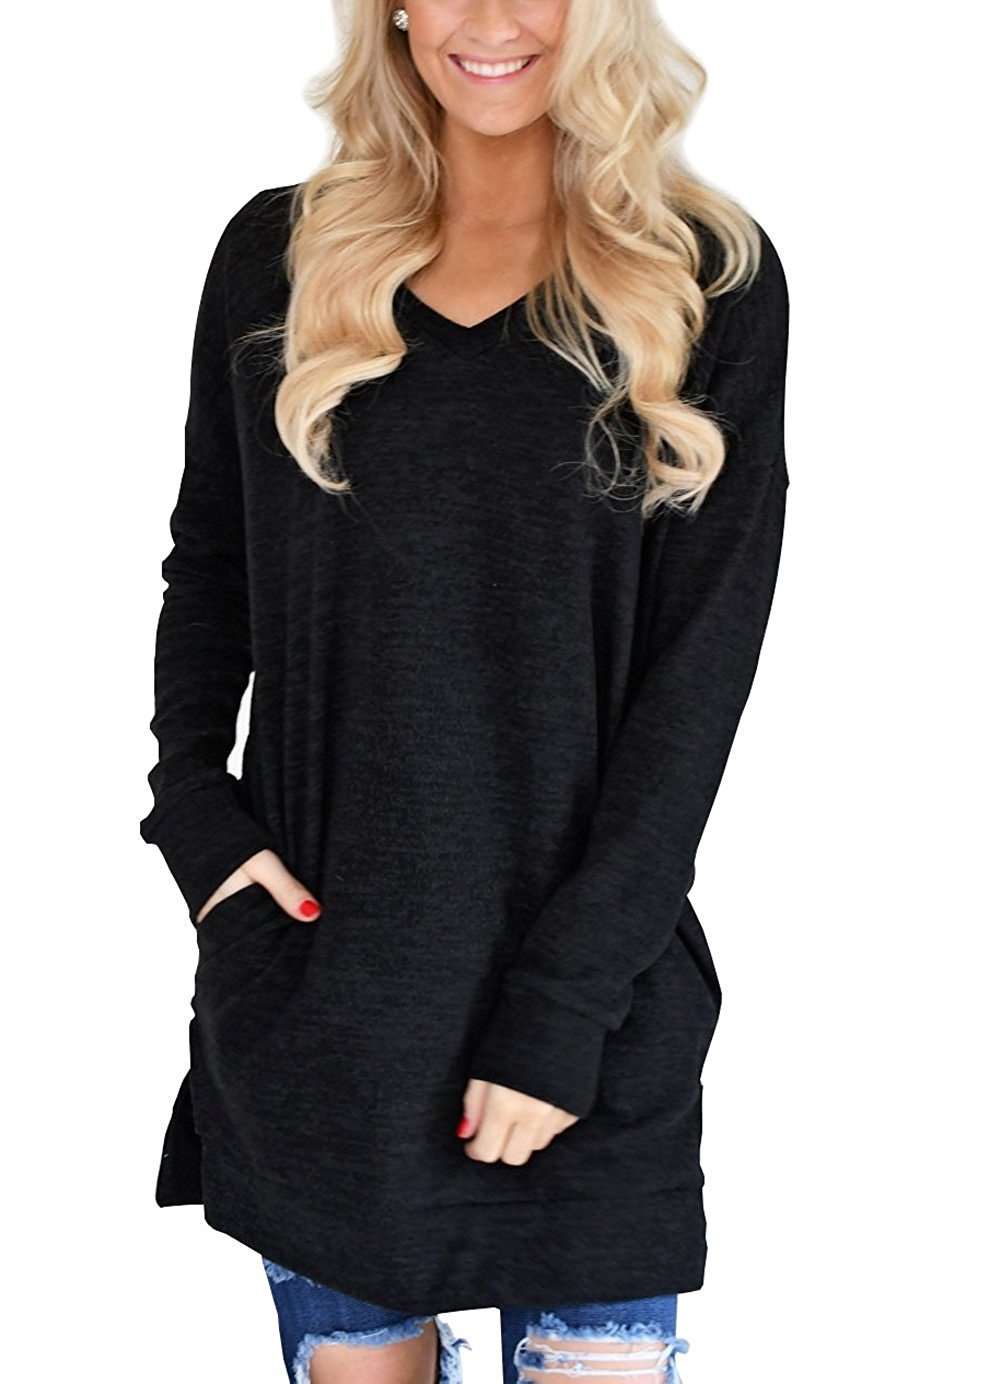 Kool Classic Womens Casual Long Sleeves Solid V-Neck Tunics Tops With Pockets Black X-Large